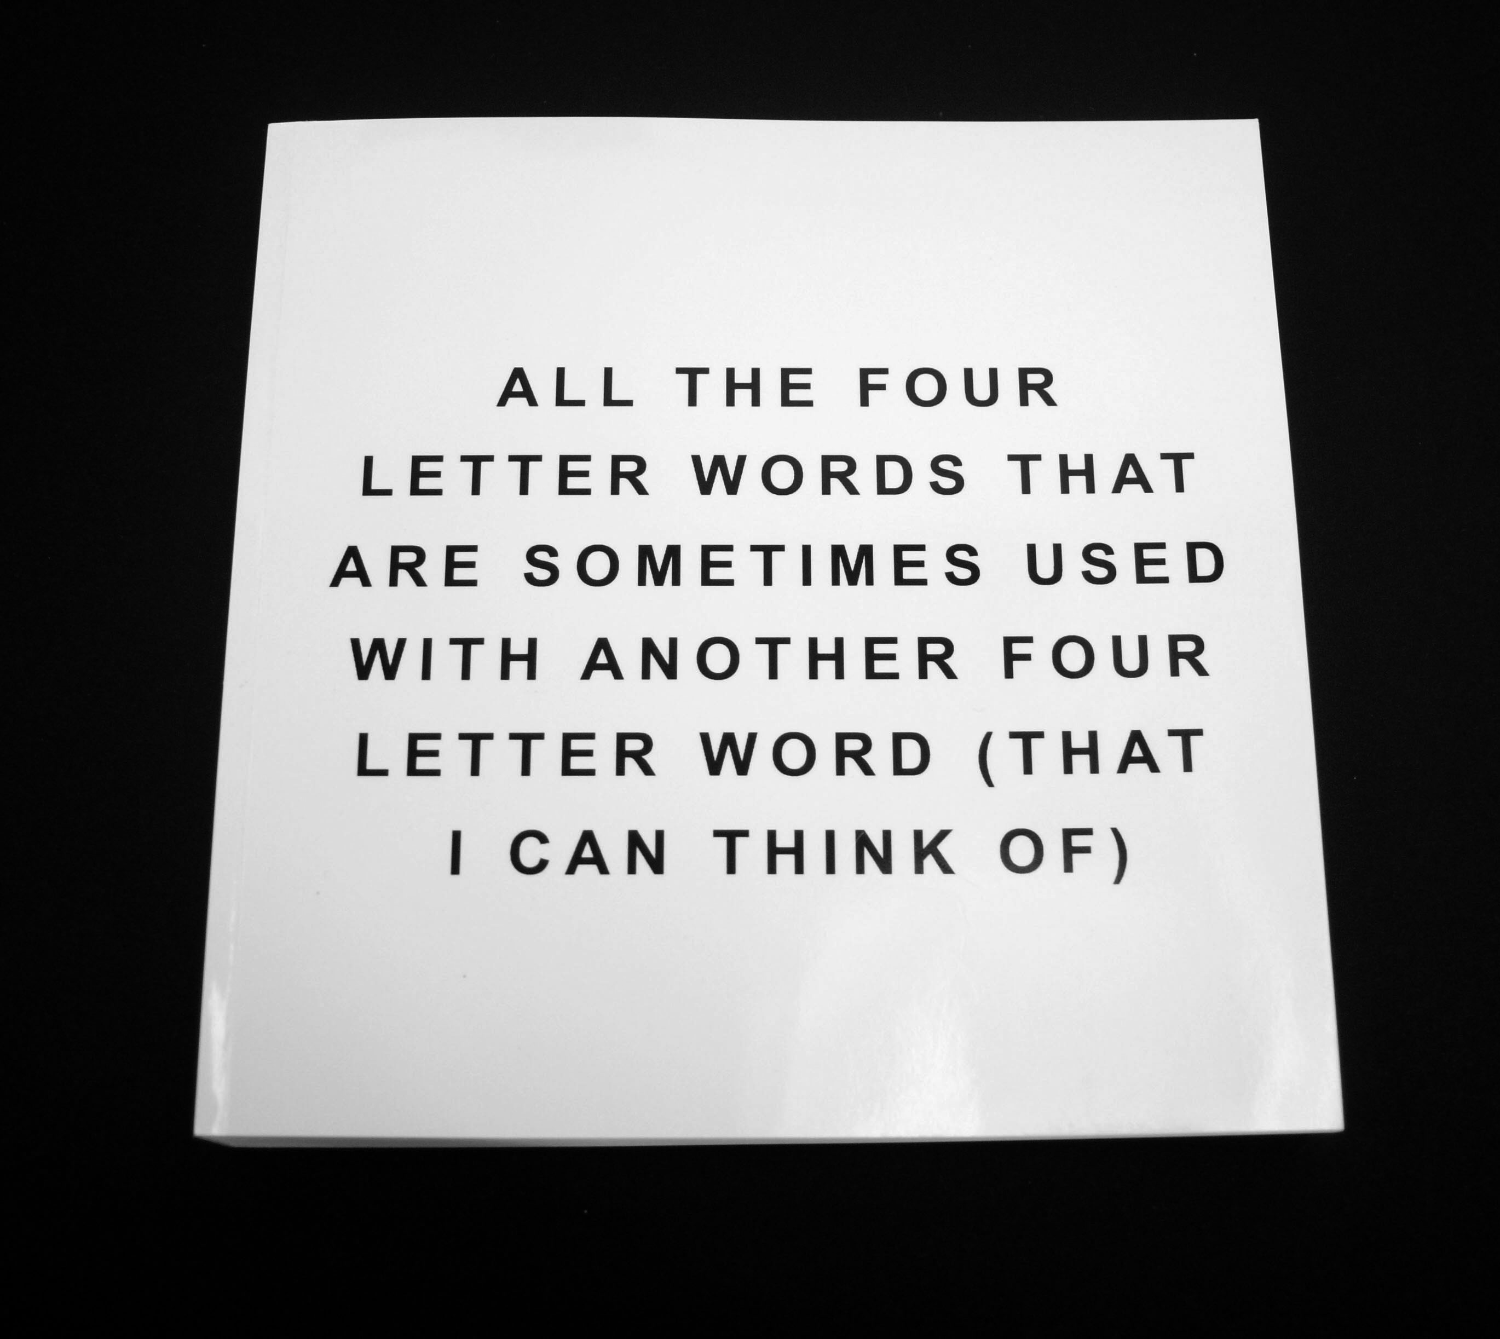 All the four-letter words